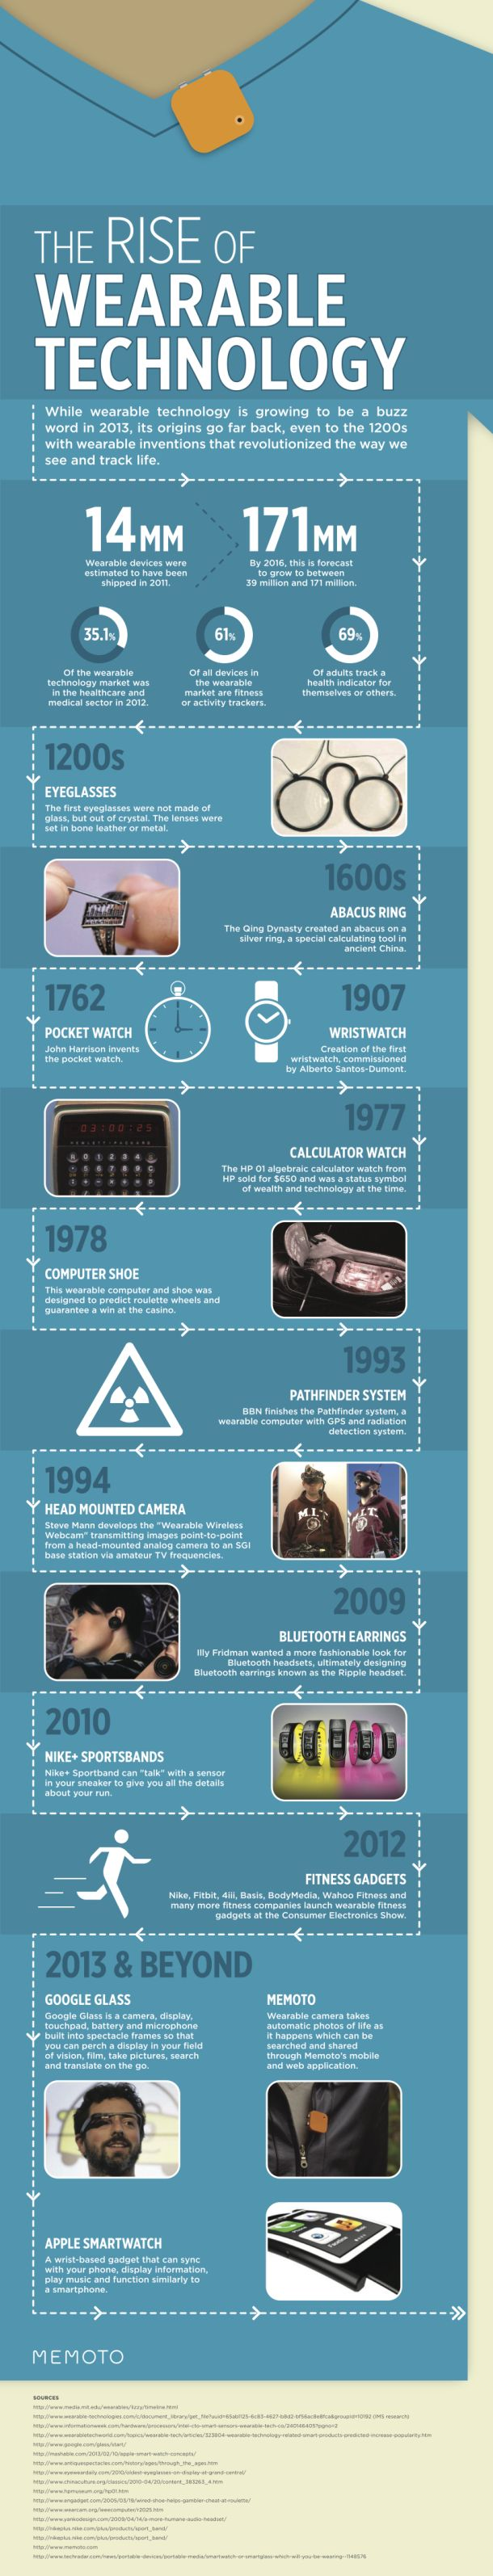 The rise of wearable technology (infographic)